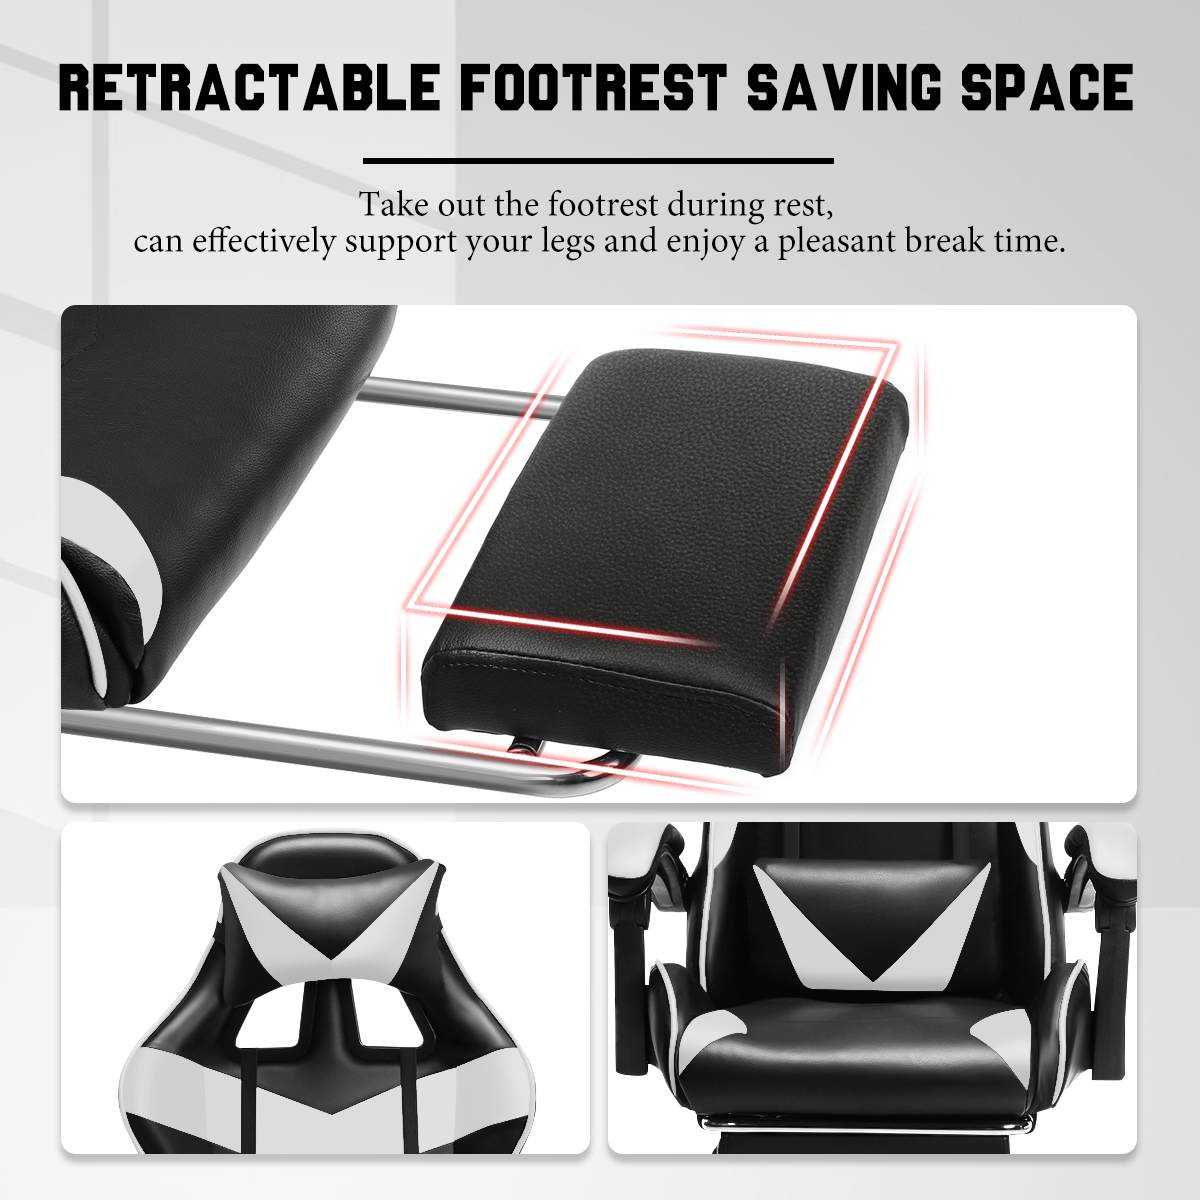 H258886c894164902a0c875a10596d5e5Y - Leather Office Gaming Chair Home Internet Cafe Racing Chair WCG Gaming Ergonomic Computer Chair Swivel Lifting Lying Gamer Chair